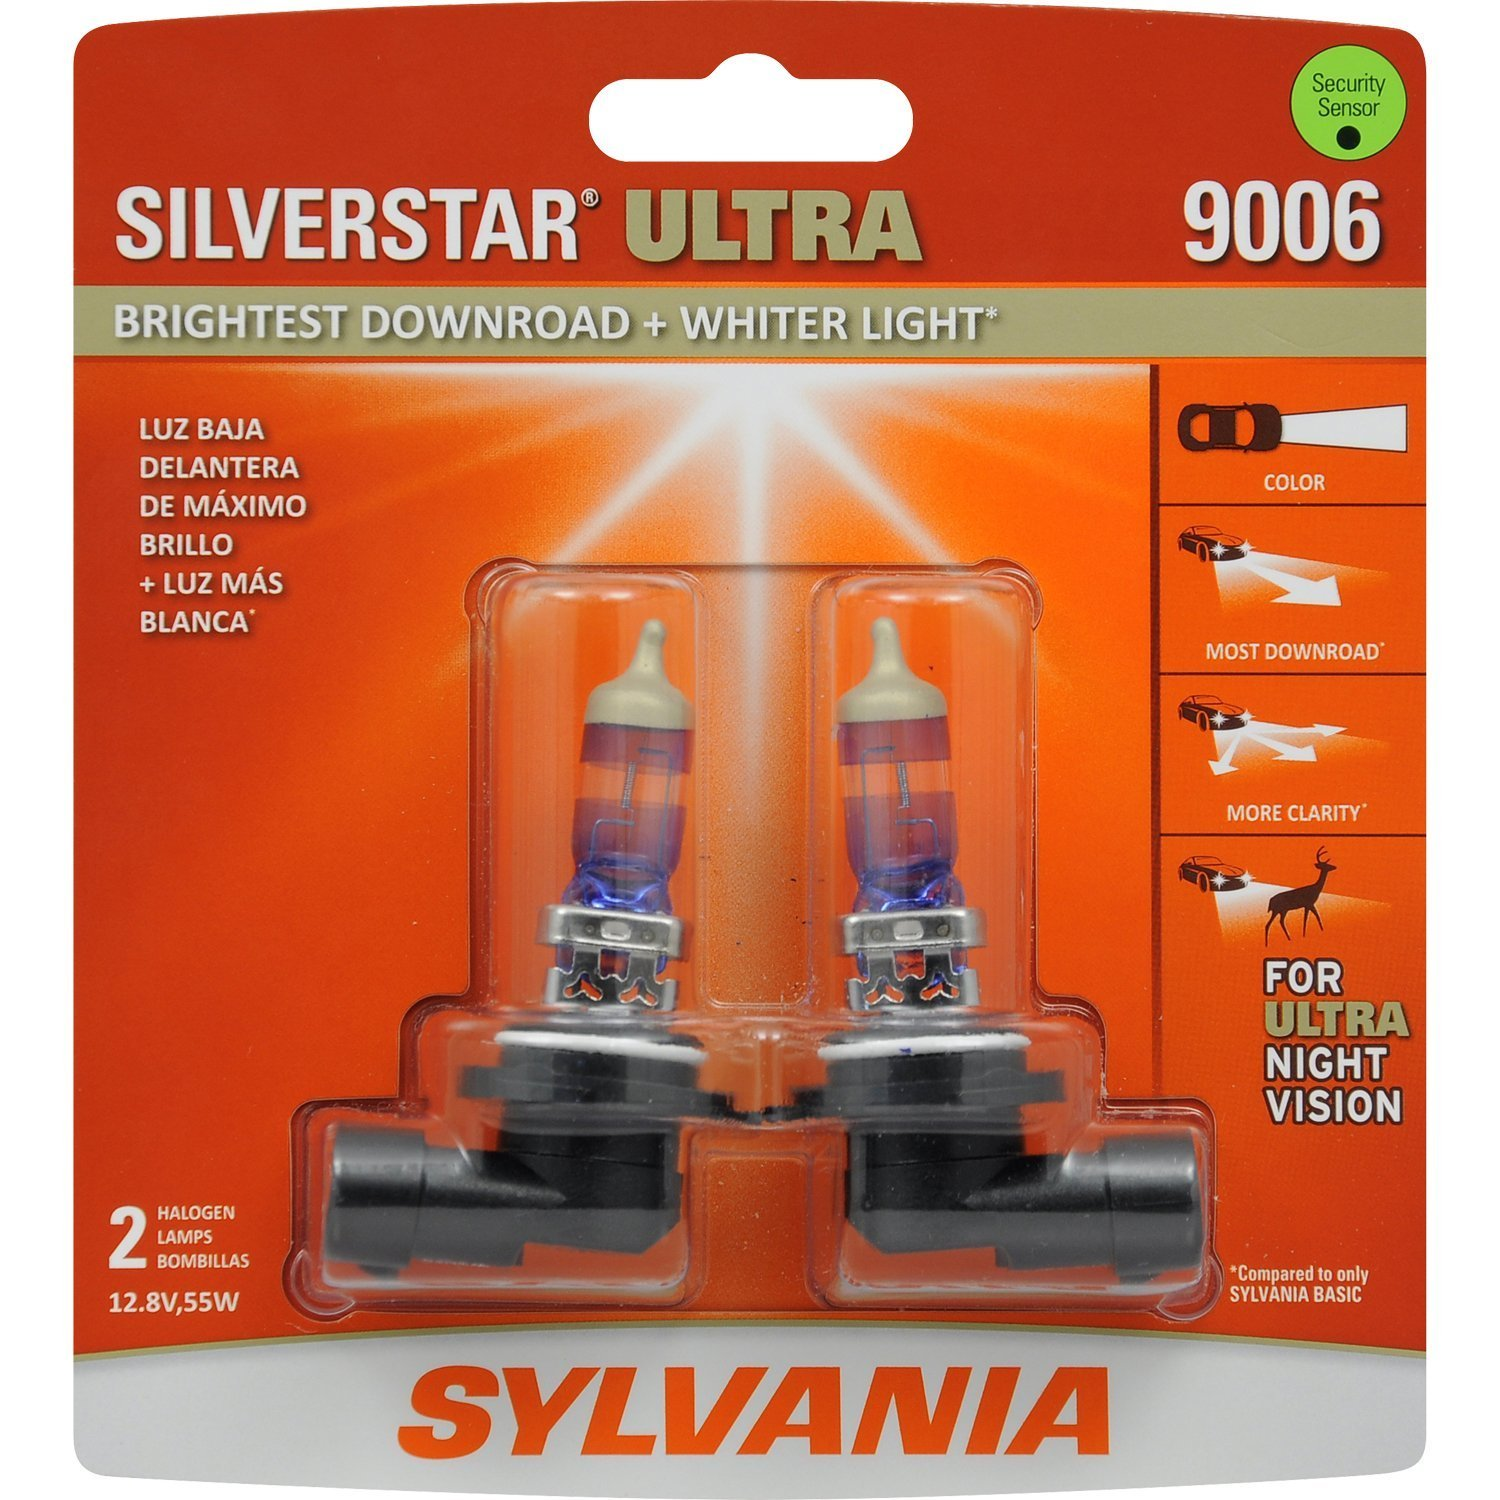 SYLVANIA - H7 SilverStar Ultra - High Performance Halogen Headlight Bulb, High Beam, Low Beam and Fog Replacement Bulb, Brightest Downroad with Whiter Light, Tri-Band Technology (Contains 2 Bulbs) H7SU.BP2